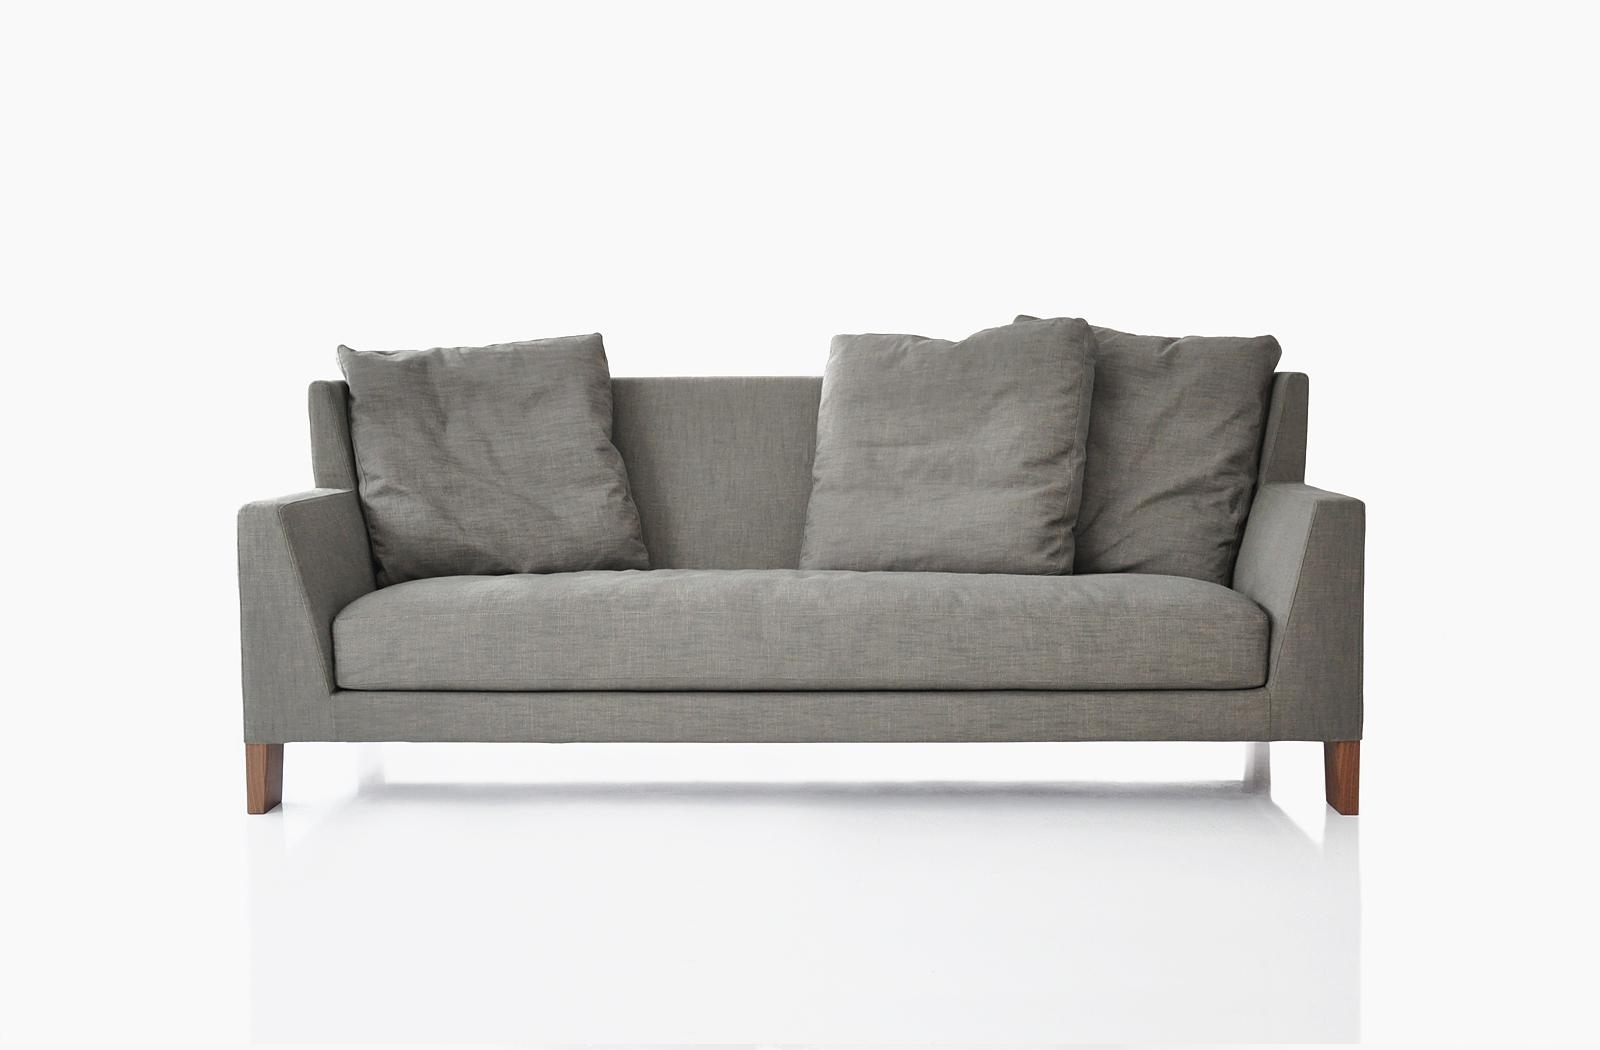 Morgan | Bensen Throughout Bensen Sofas (View 16 of 20)